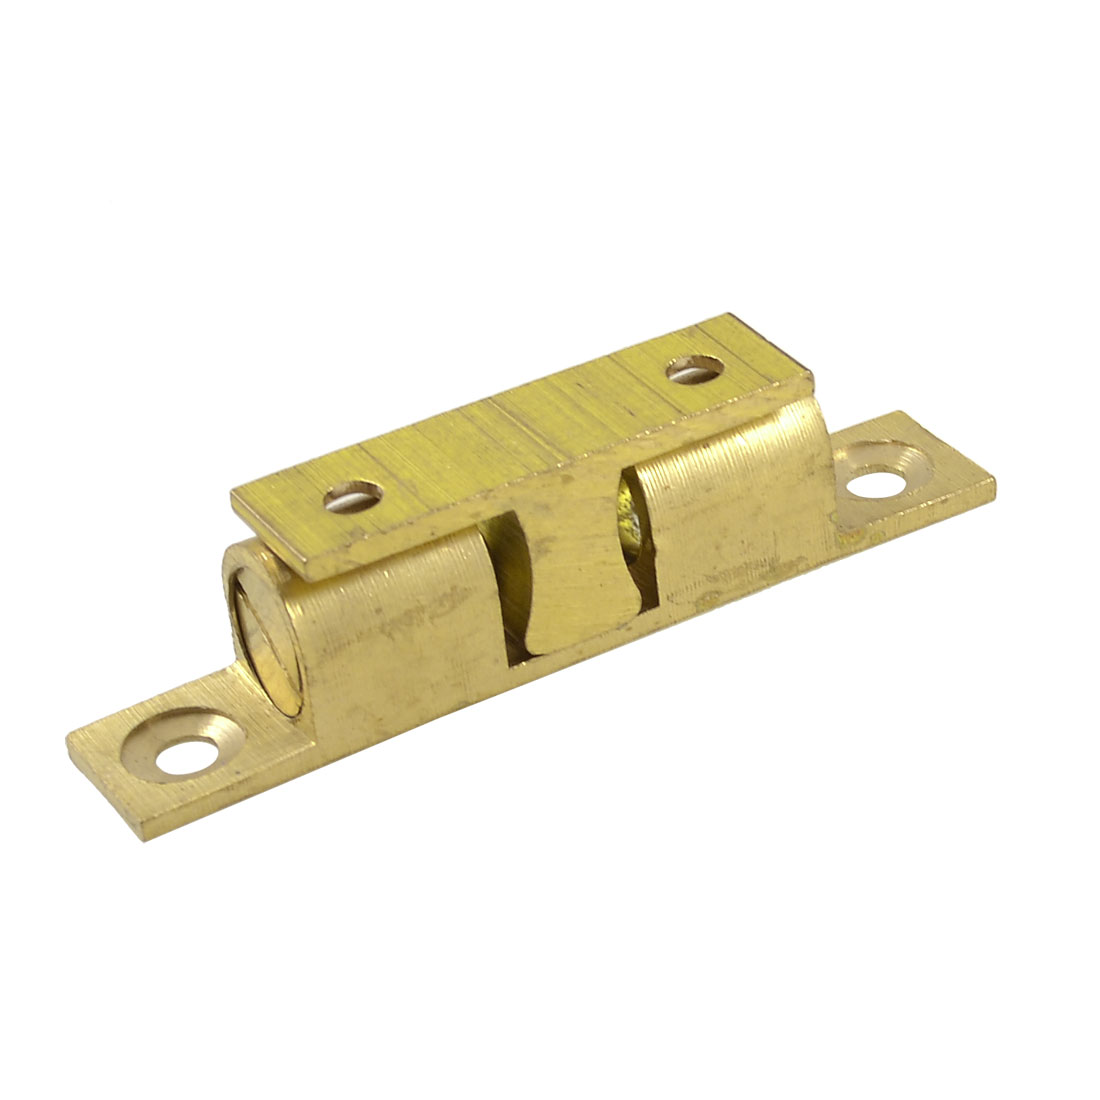 Home Door Latch Double Ball Catch 70mm Length Gold Tone